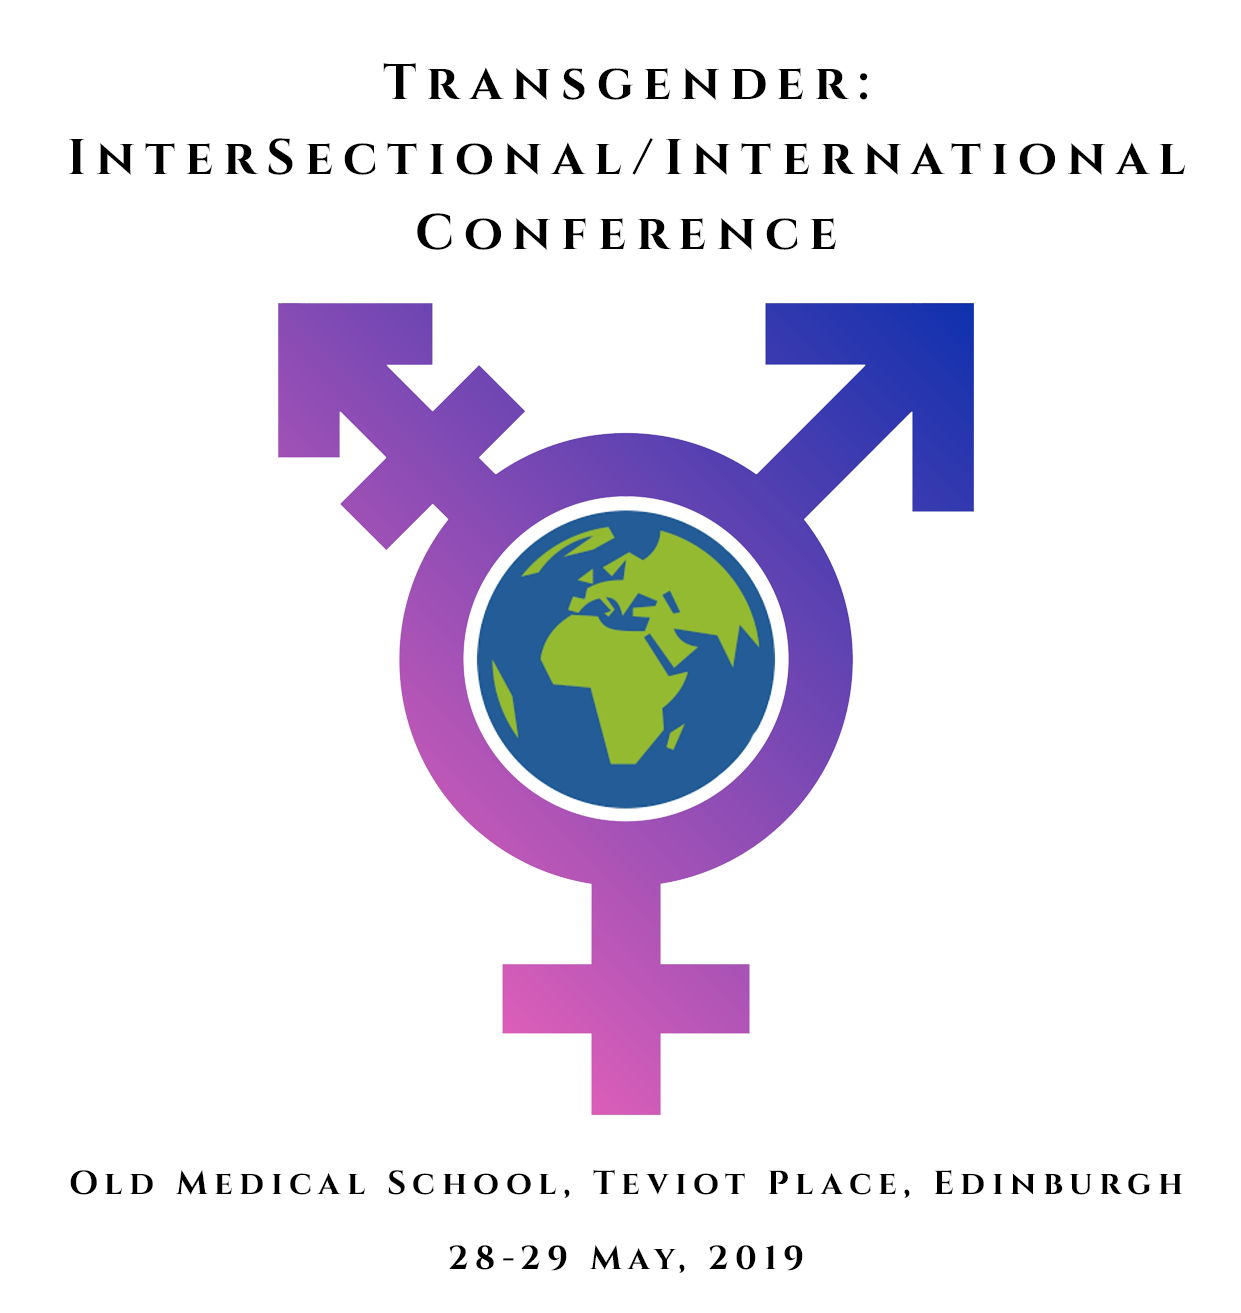 Transgender: Intersectional/International Conference